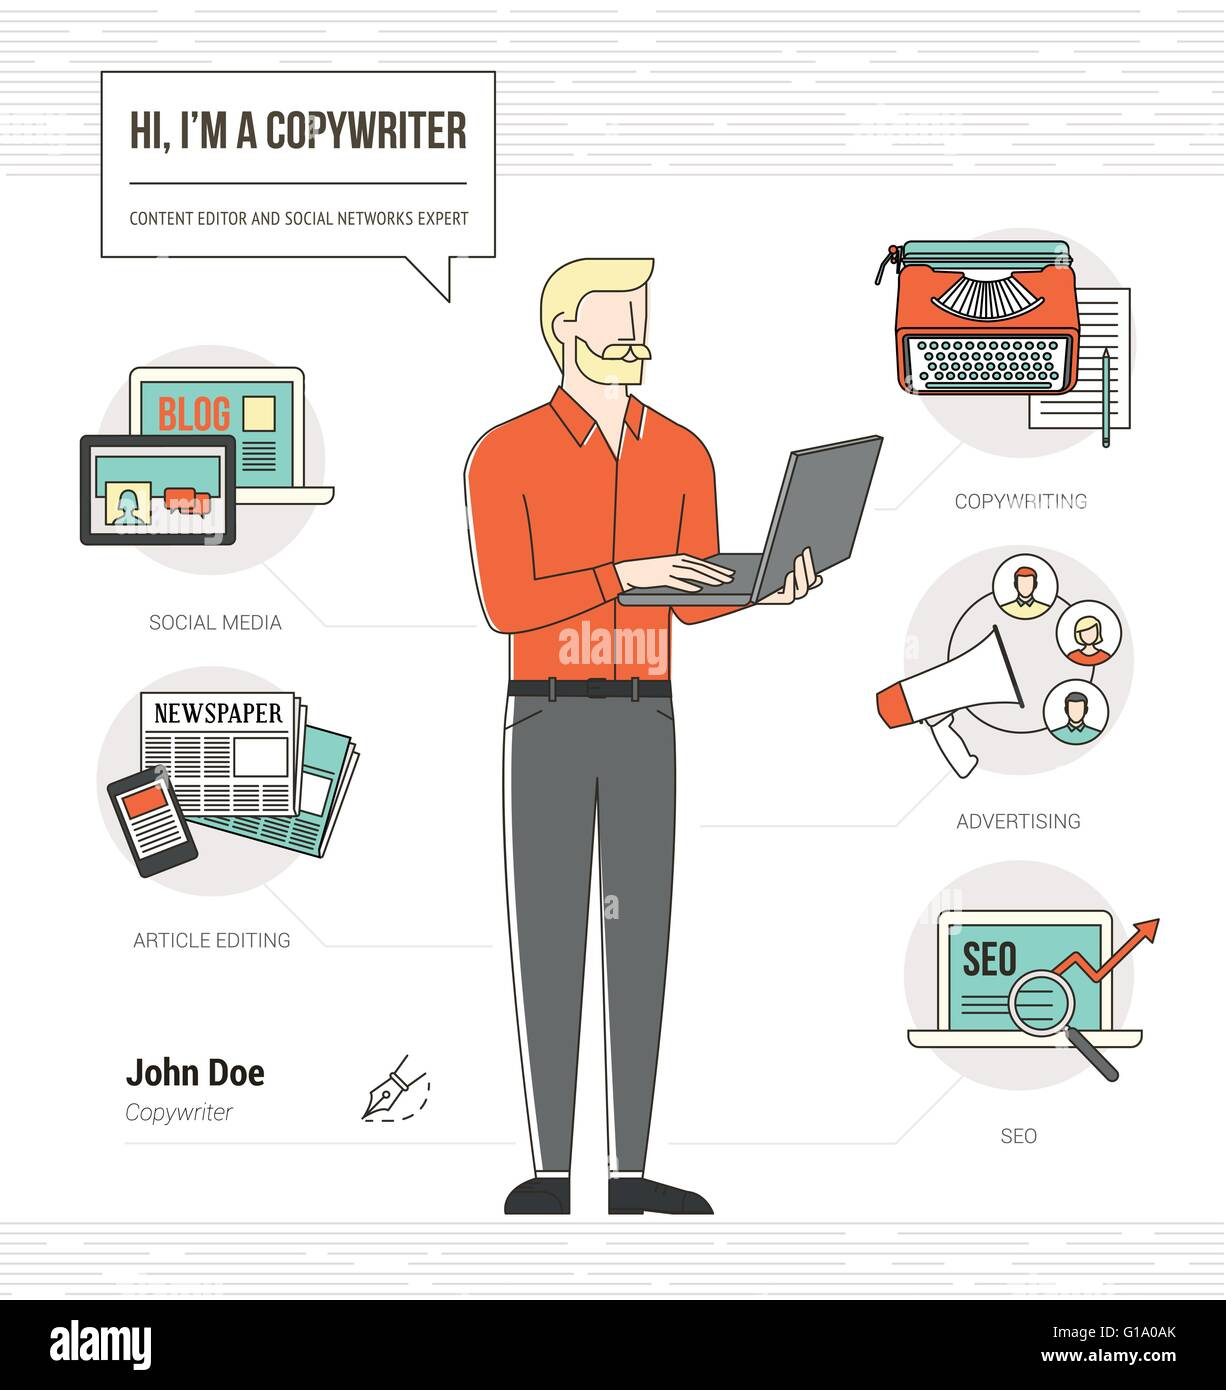 Professional copywriter infographic skills resume with icons and ...